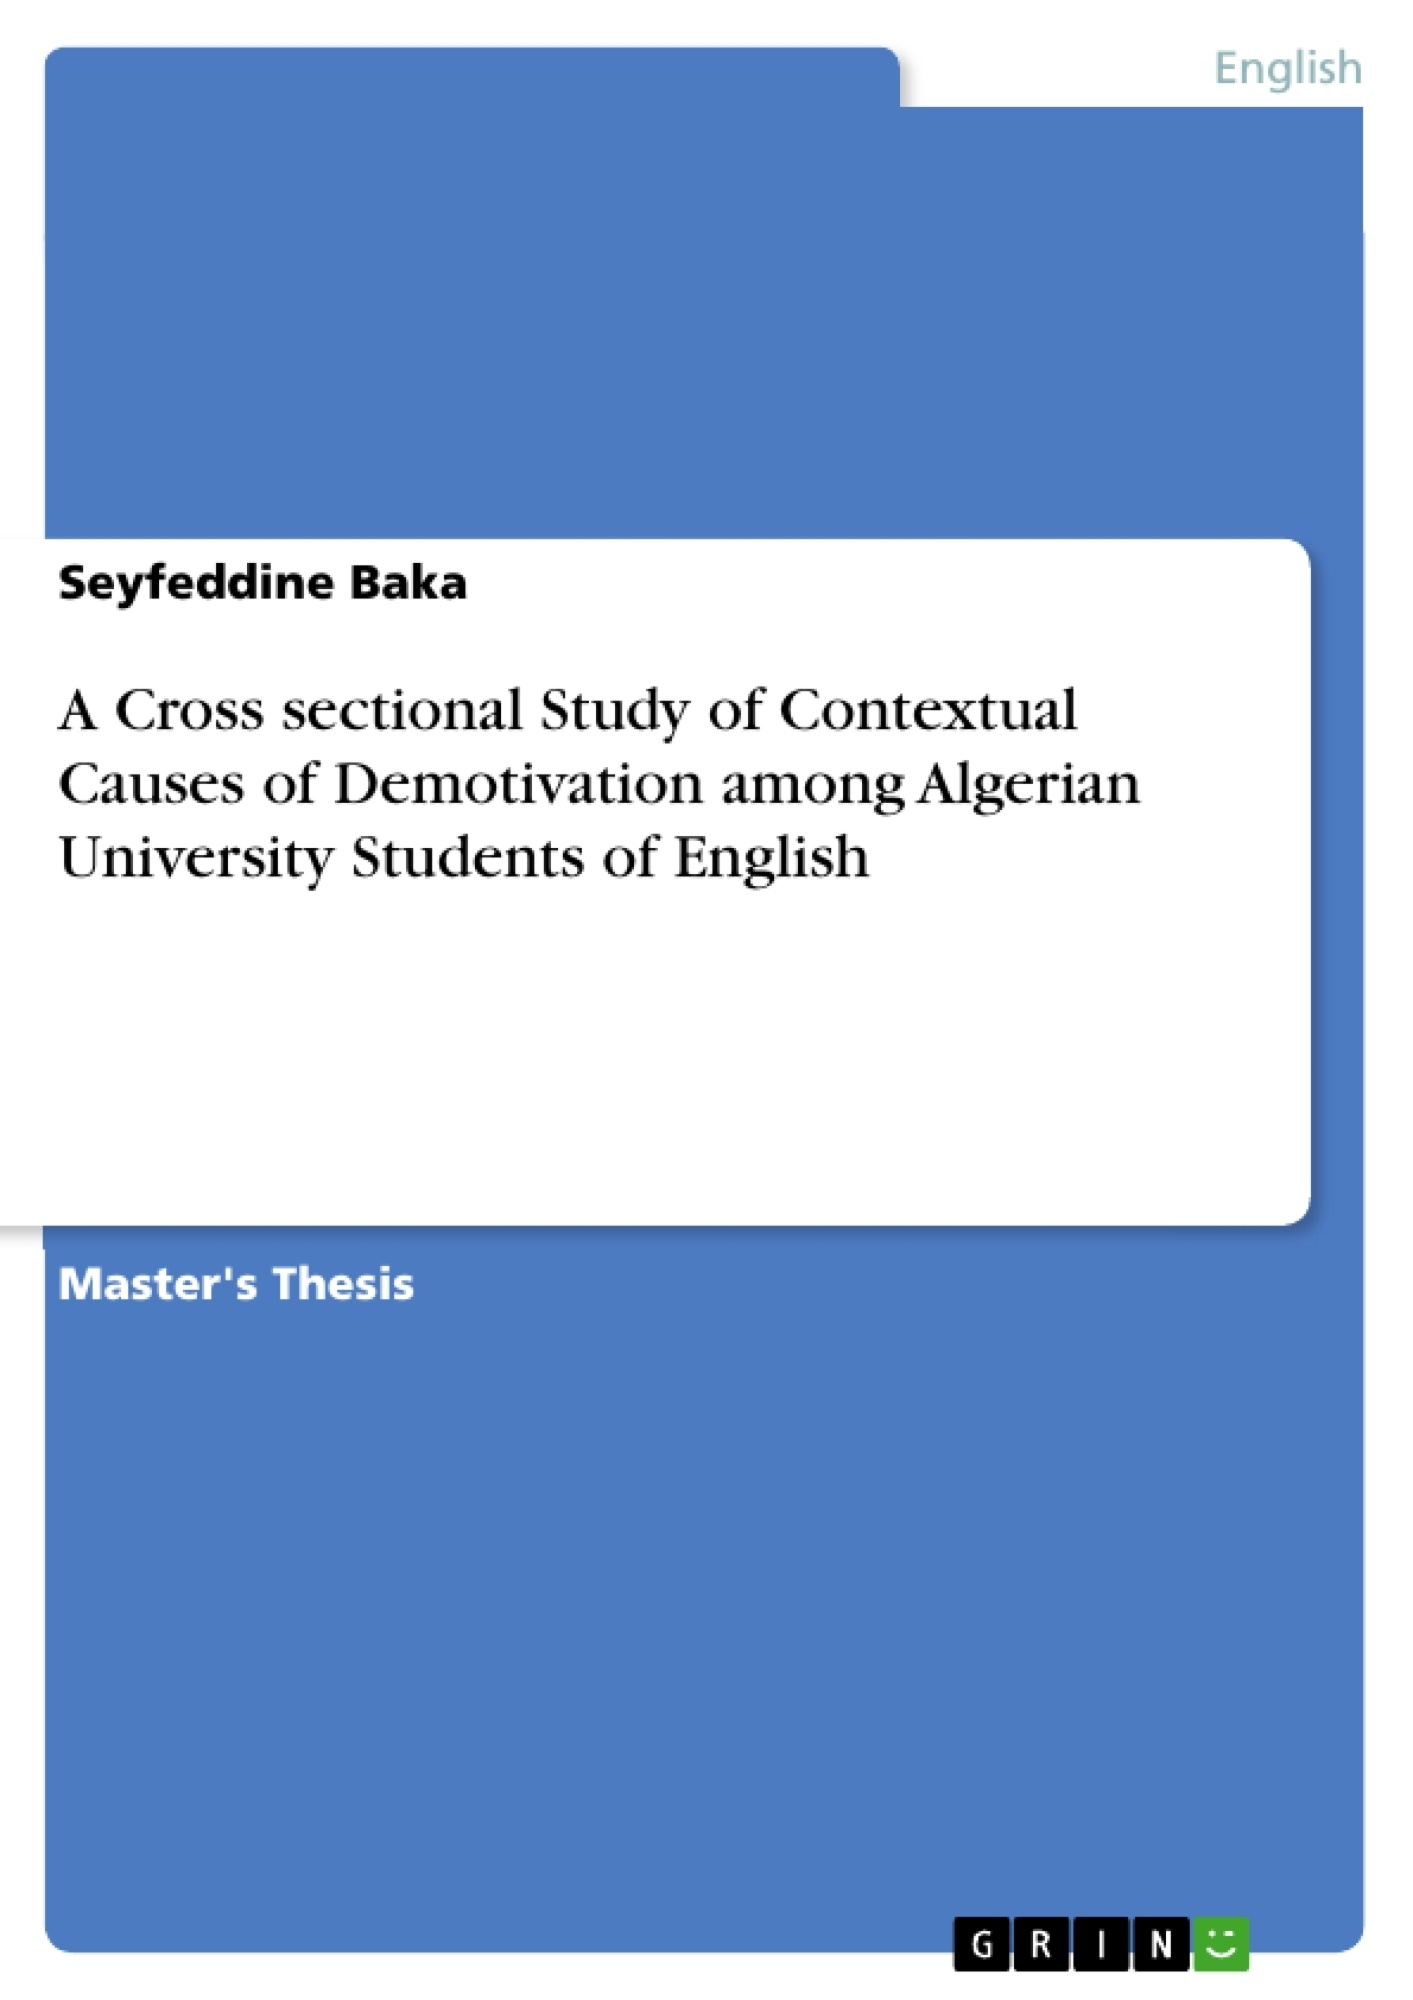 Title: A Cross sectional Study of Contextual Causes of Demotivation among Algerian University Students of English